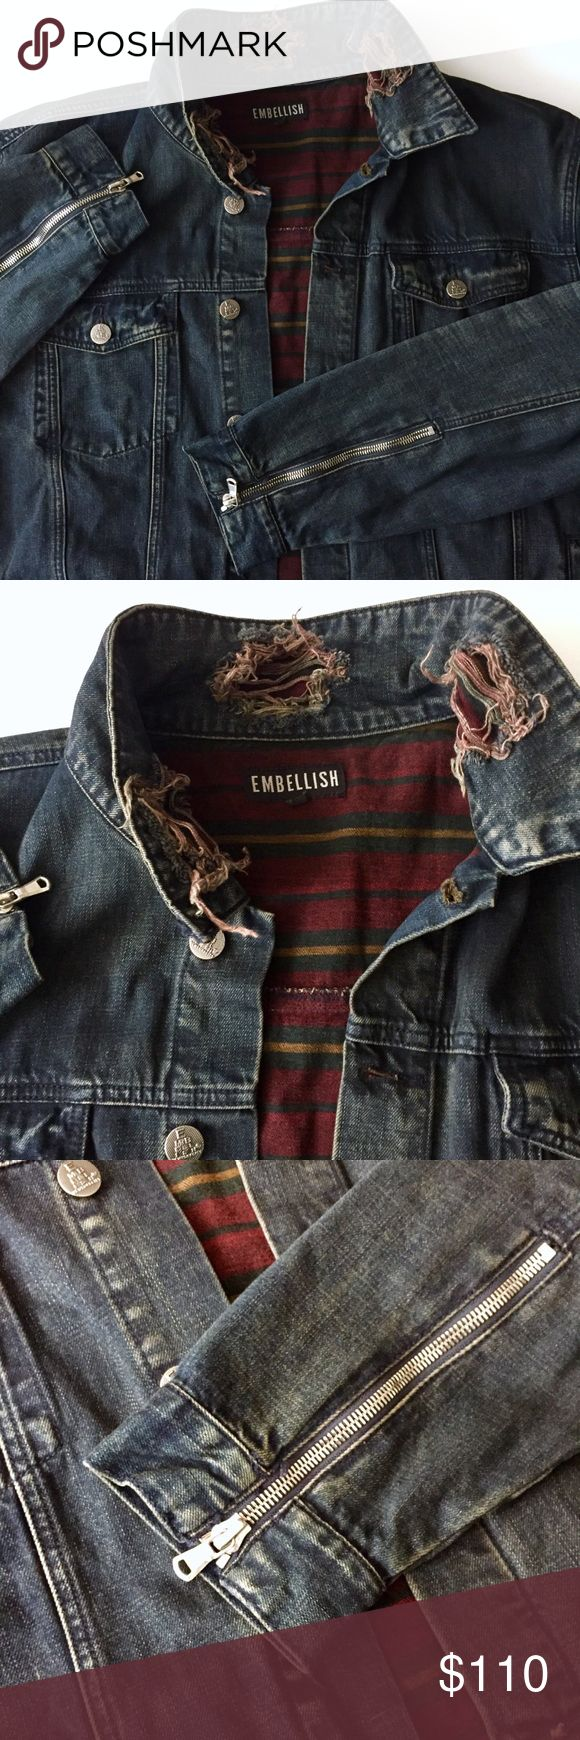 Men's Denim Jacket EMBELLISH /  DENIM JACKET Men's Big & Tall 3X - Dark blue vintage style wash  - Ripped embellish detail - Plaid Flannel lining  - Silver buttons / side zippers at hips and on sleeves ✅ NWOT- brand new. Ordered online- no tags ever included. Never worn ✅ NO trades / NO low-balling ✅ List price is fair and highly discounted✌️ Embellish Jackets & Coats